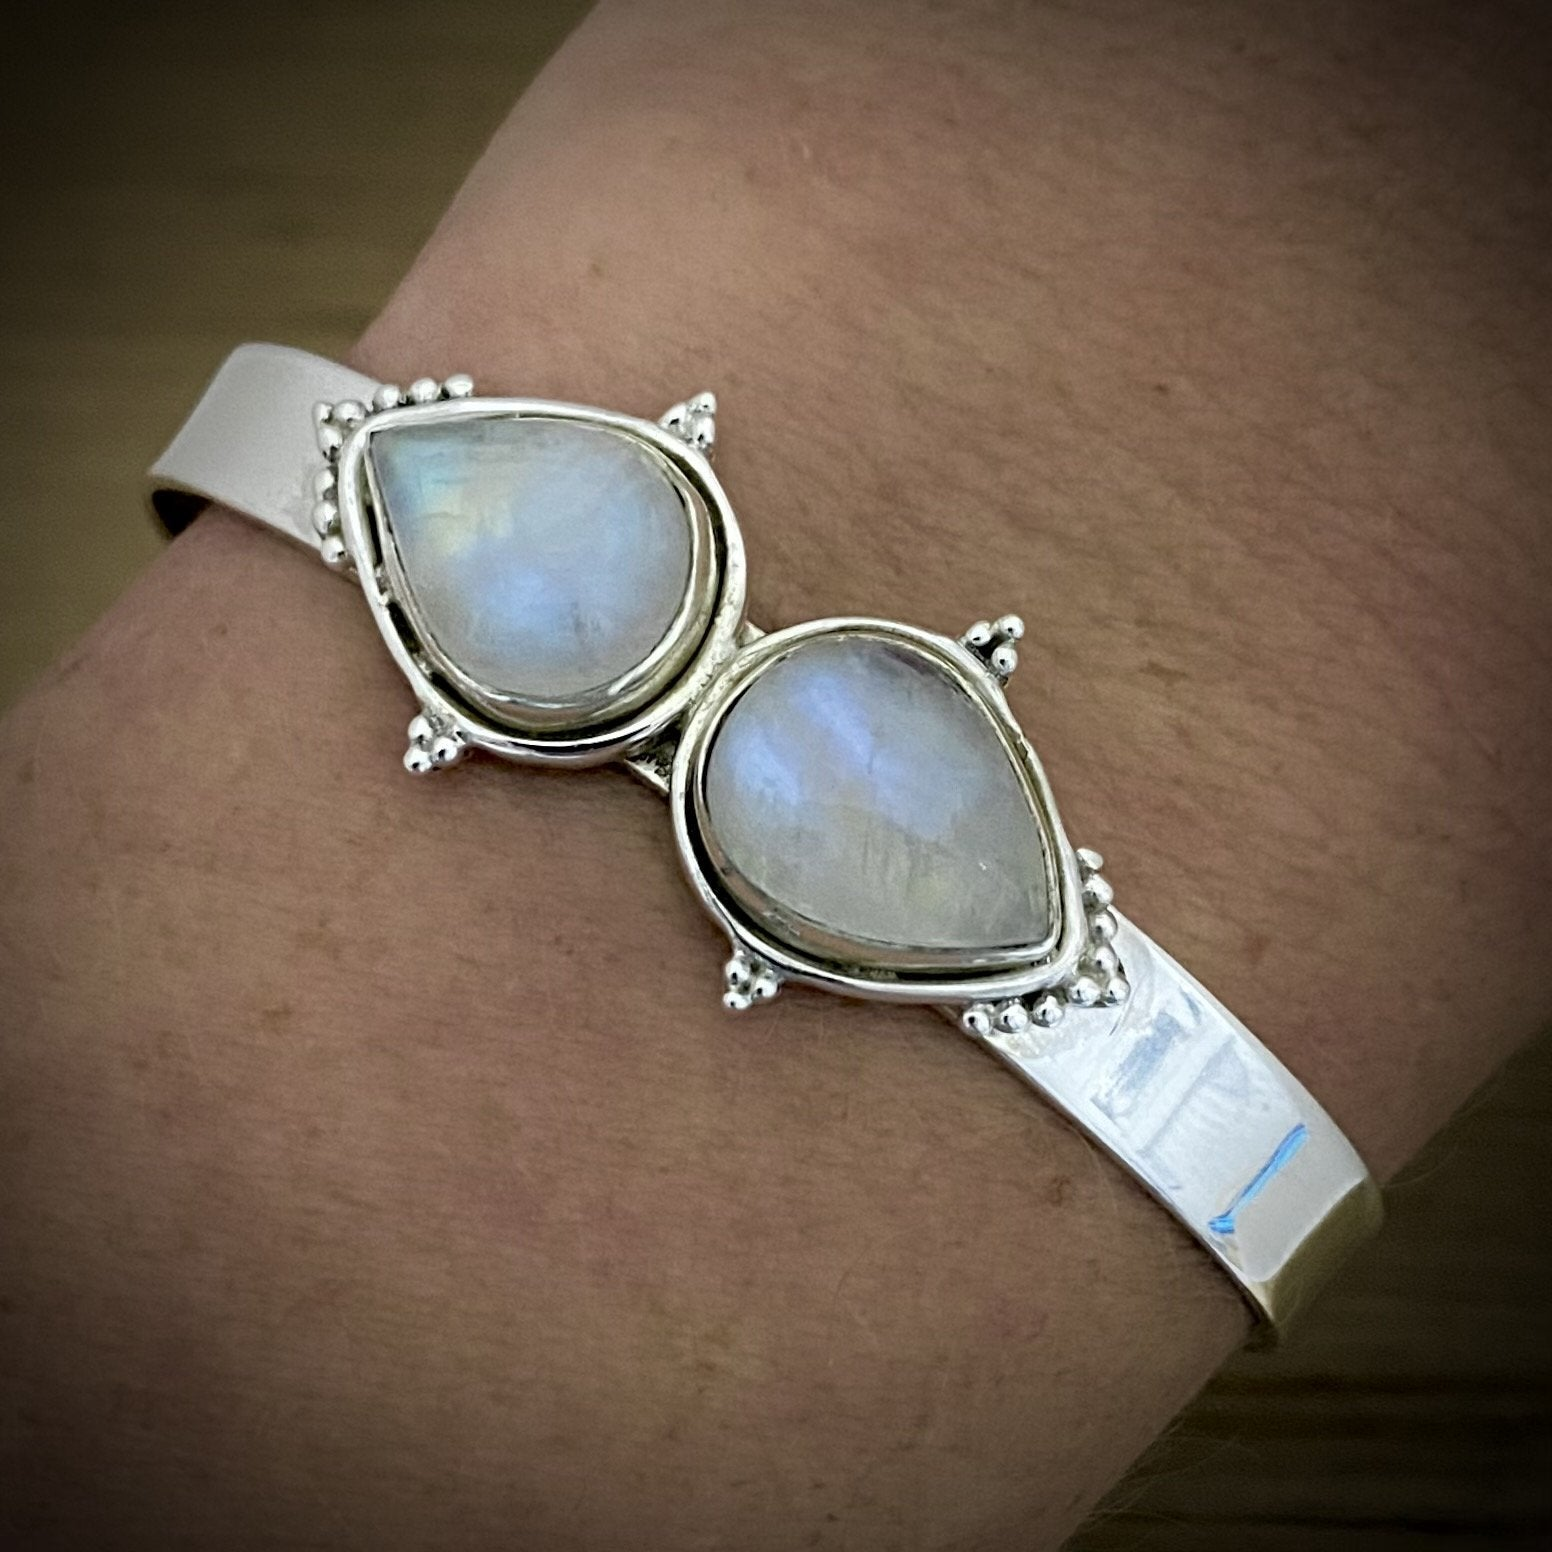 Moonstone Bangle - Laihas Bohemian Dreaming